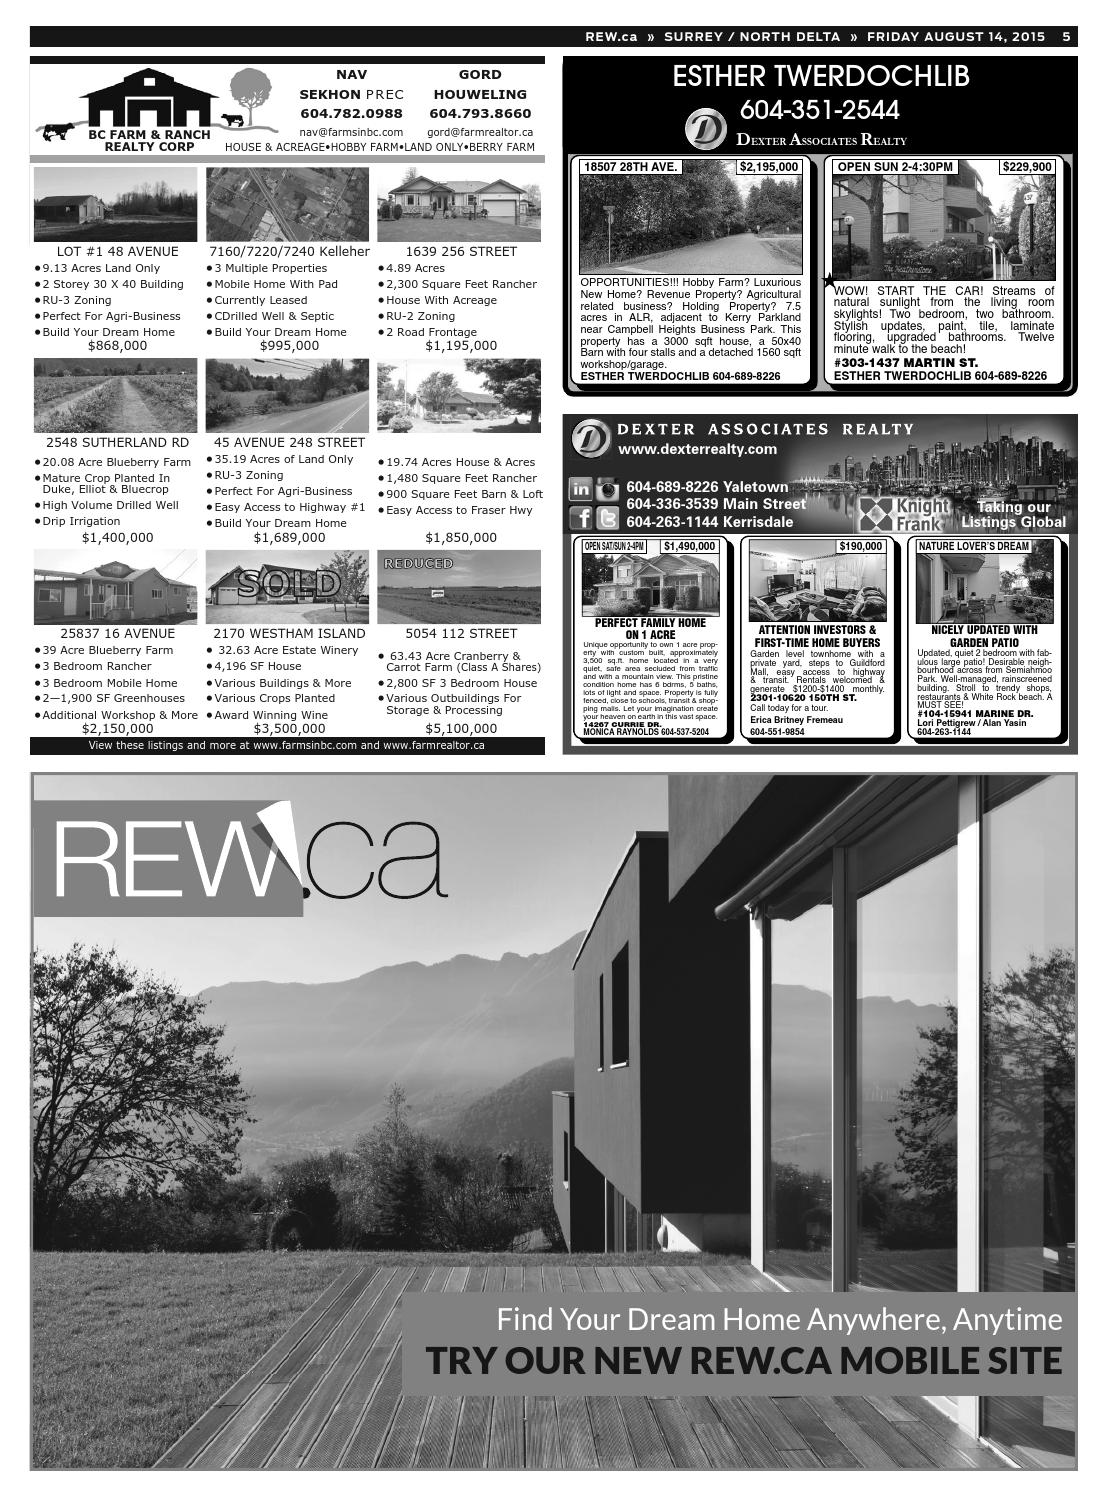 SURREY / NORTH DELTA Aug 14, 2015 Real Estate Weekly by Real